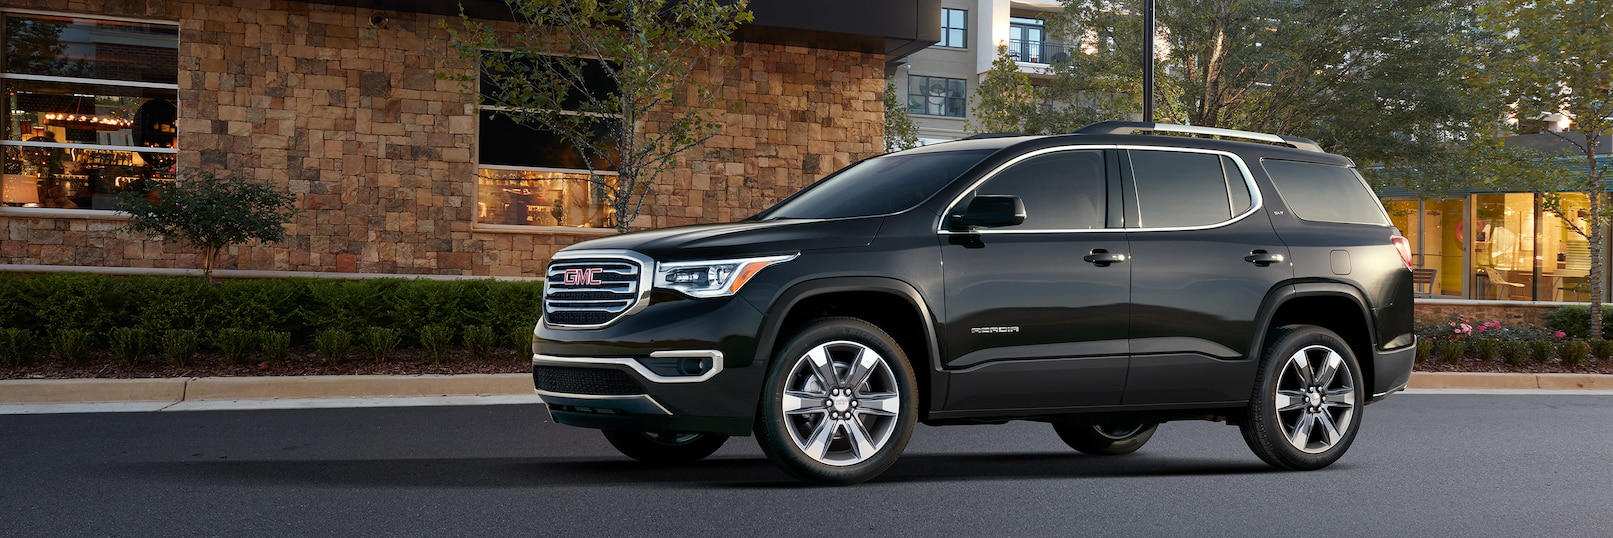 Used GMC Acadia for Sale near Quad Cities IA